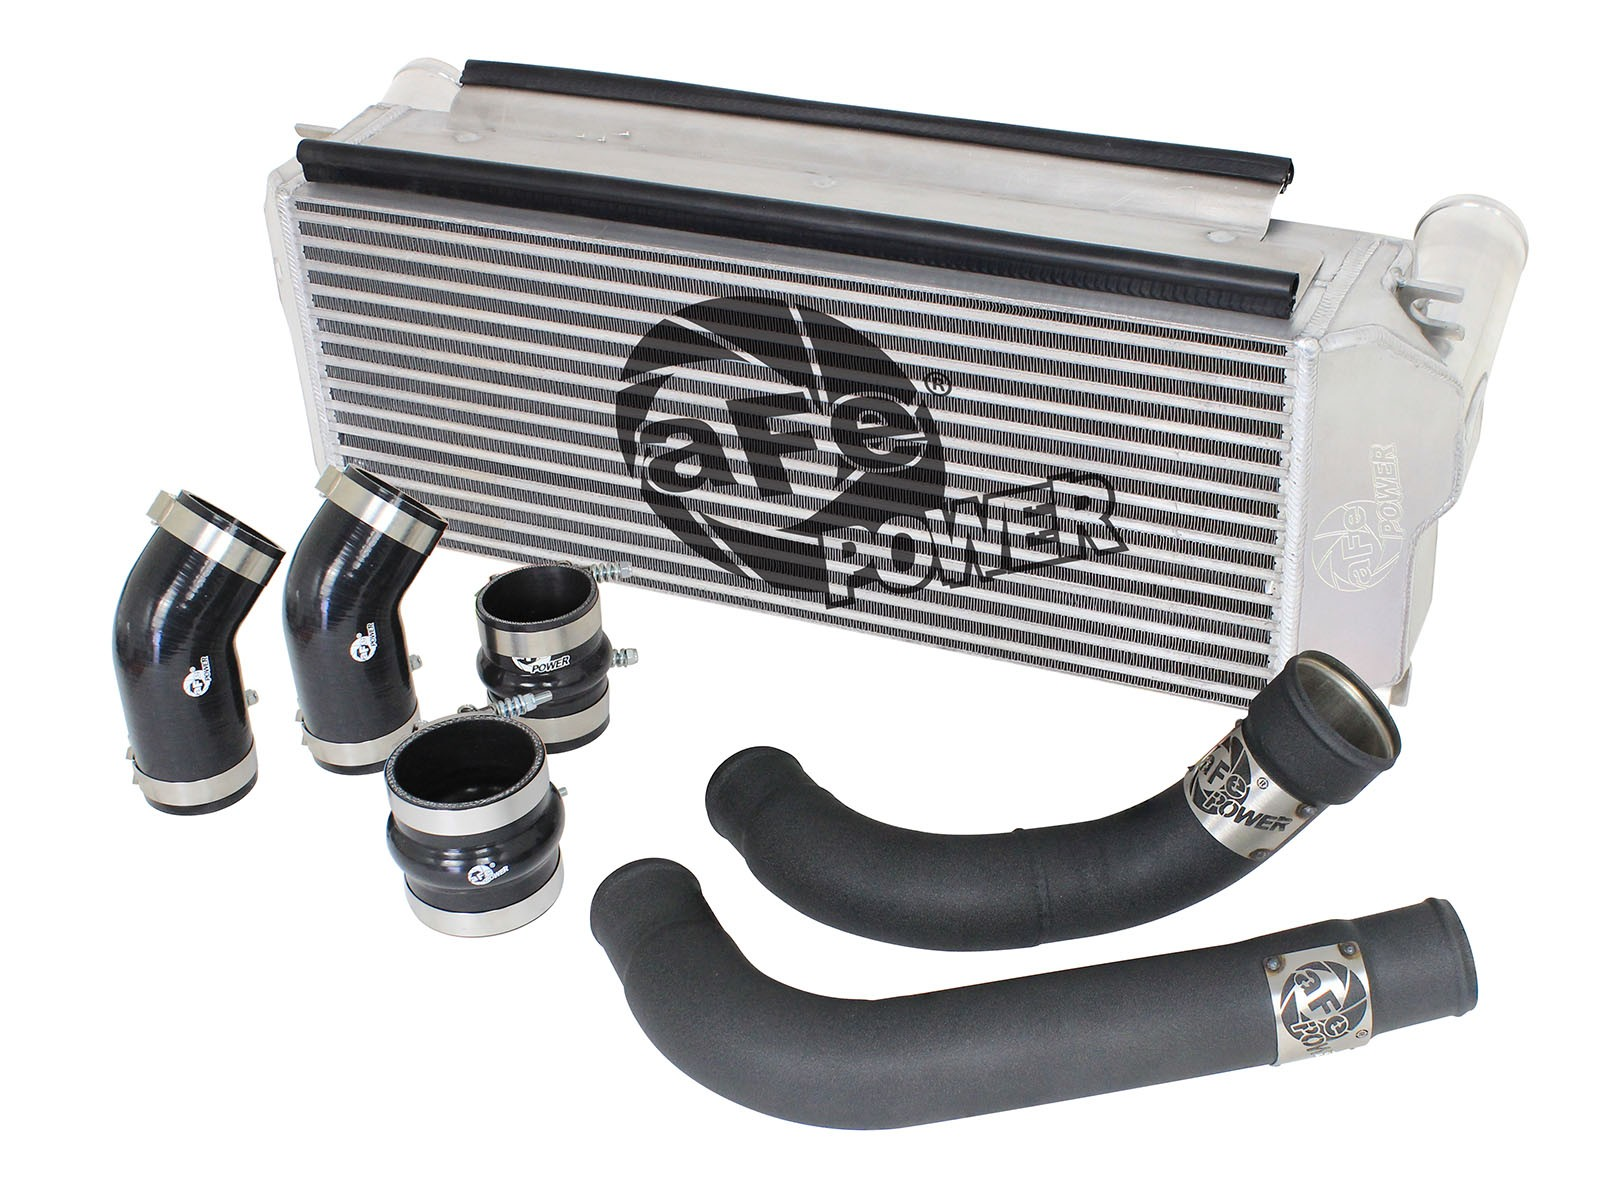 aFe POWER 46-20132-B BladeRunner GT Series Intercooler and Tubes